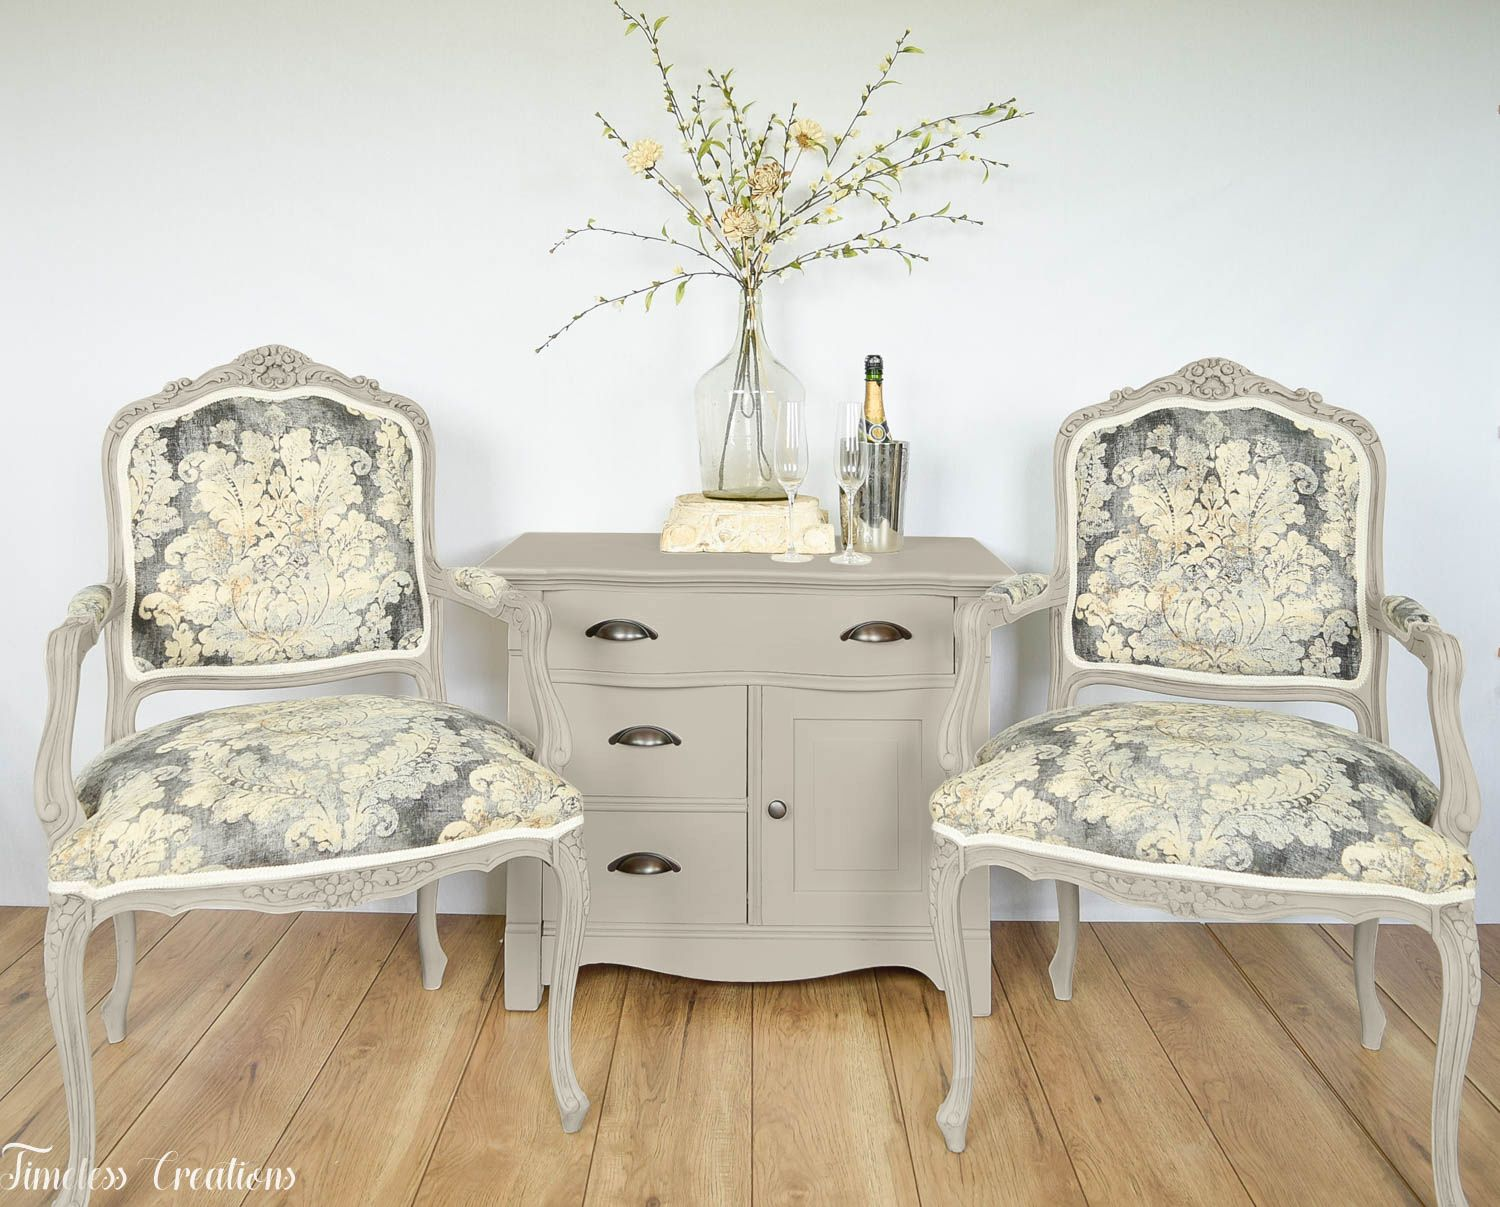 Accent/Storage Table and Chairs in Pop The Bubbly